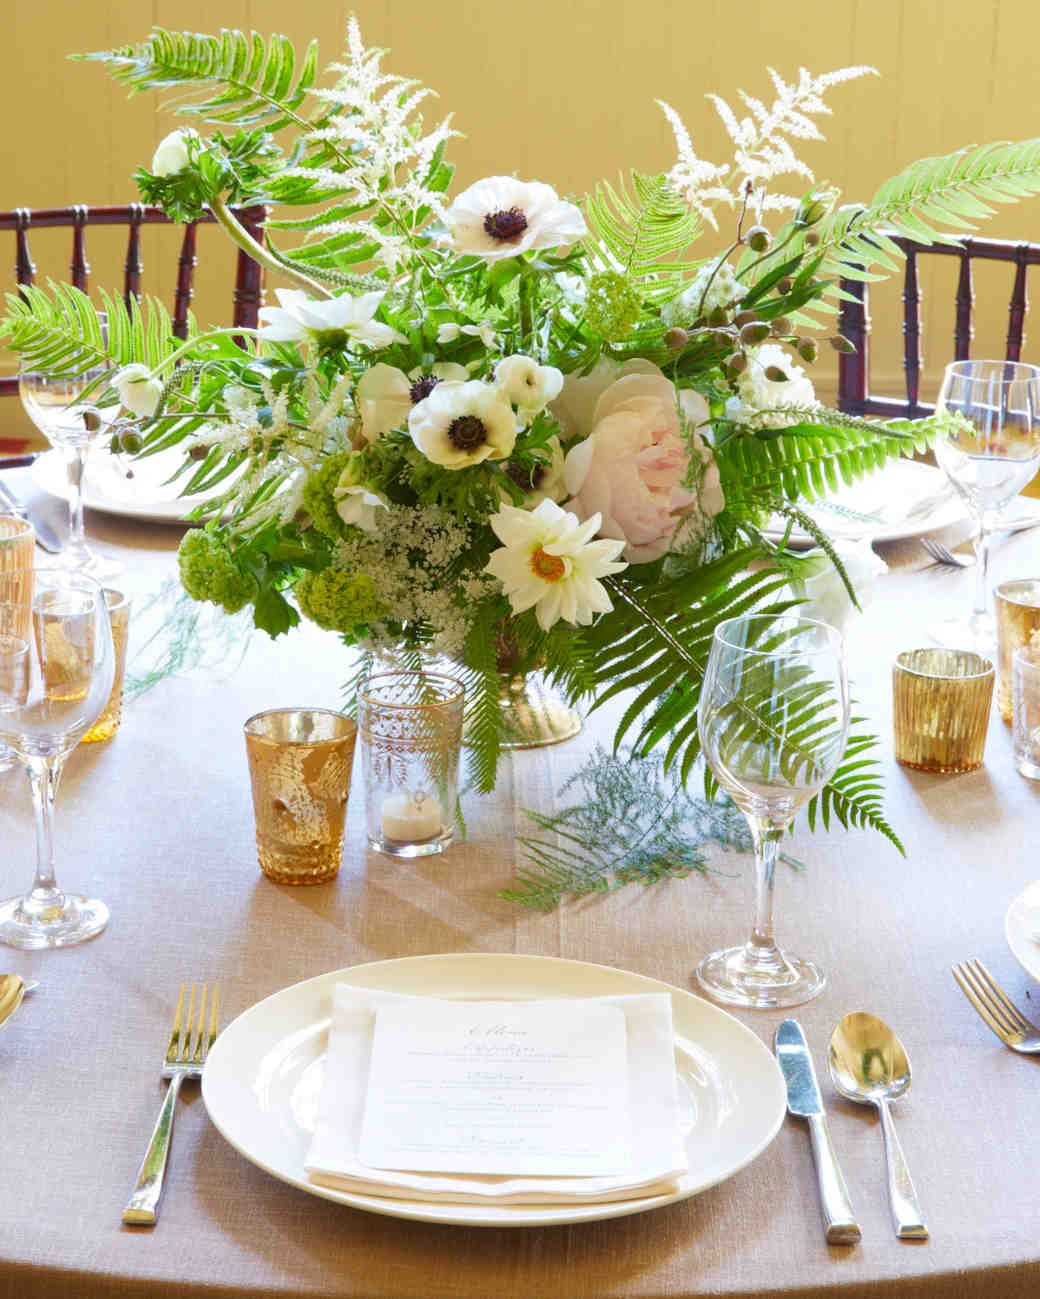 Wedding Reception Centerpieces Candles: 84 Candle Centerpieces That Will Light Up Your Reception